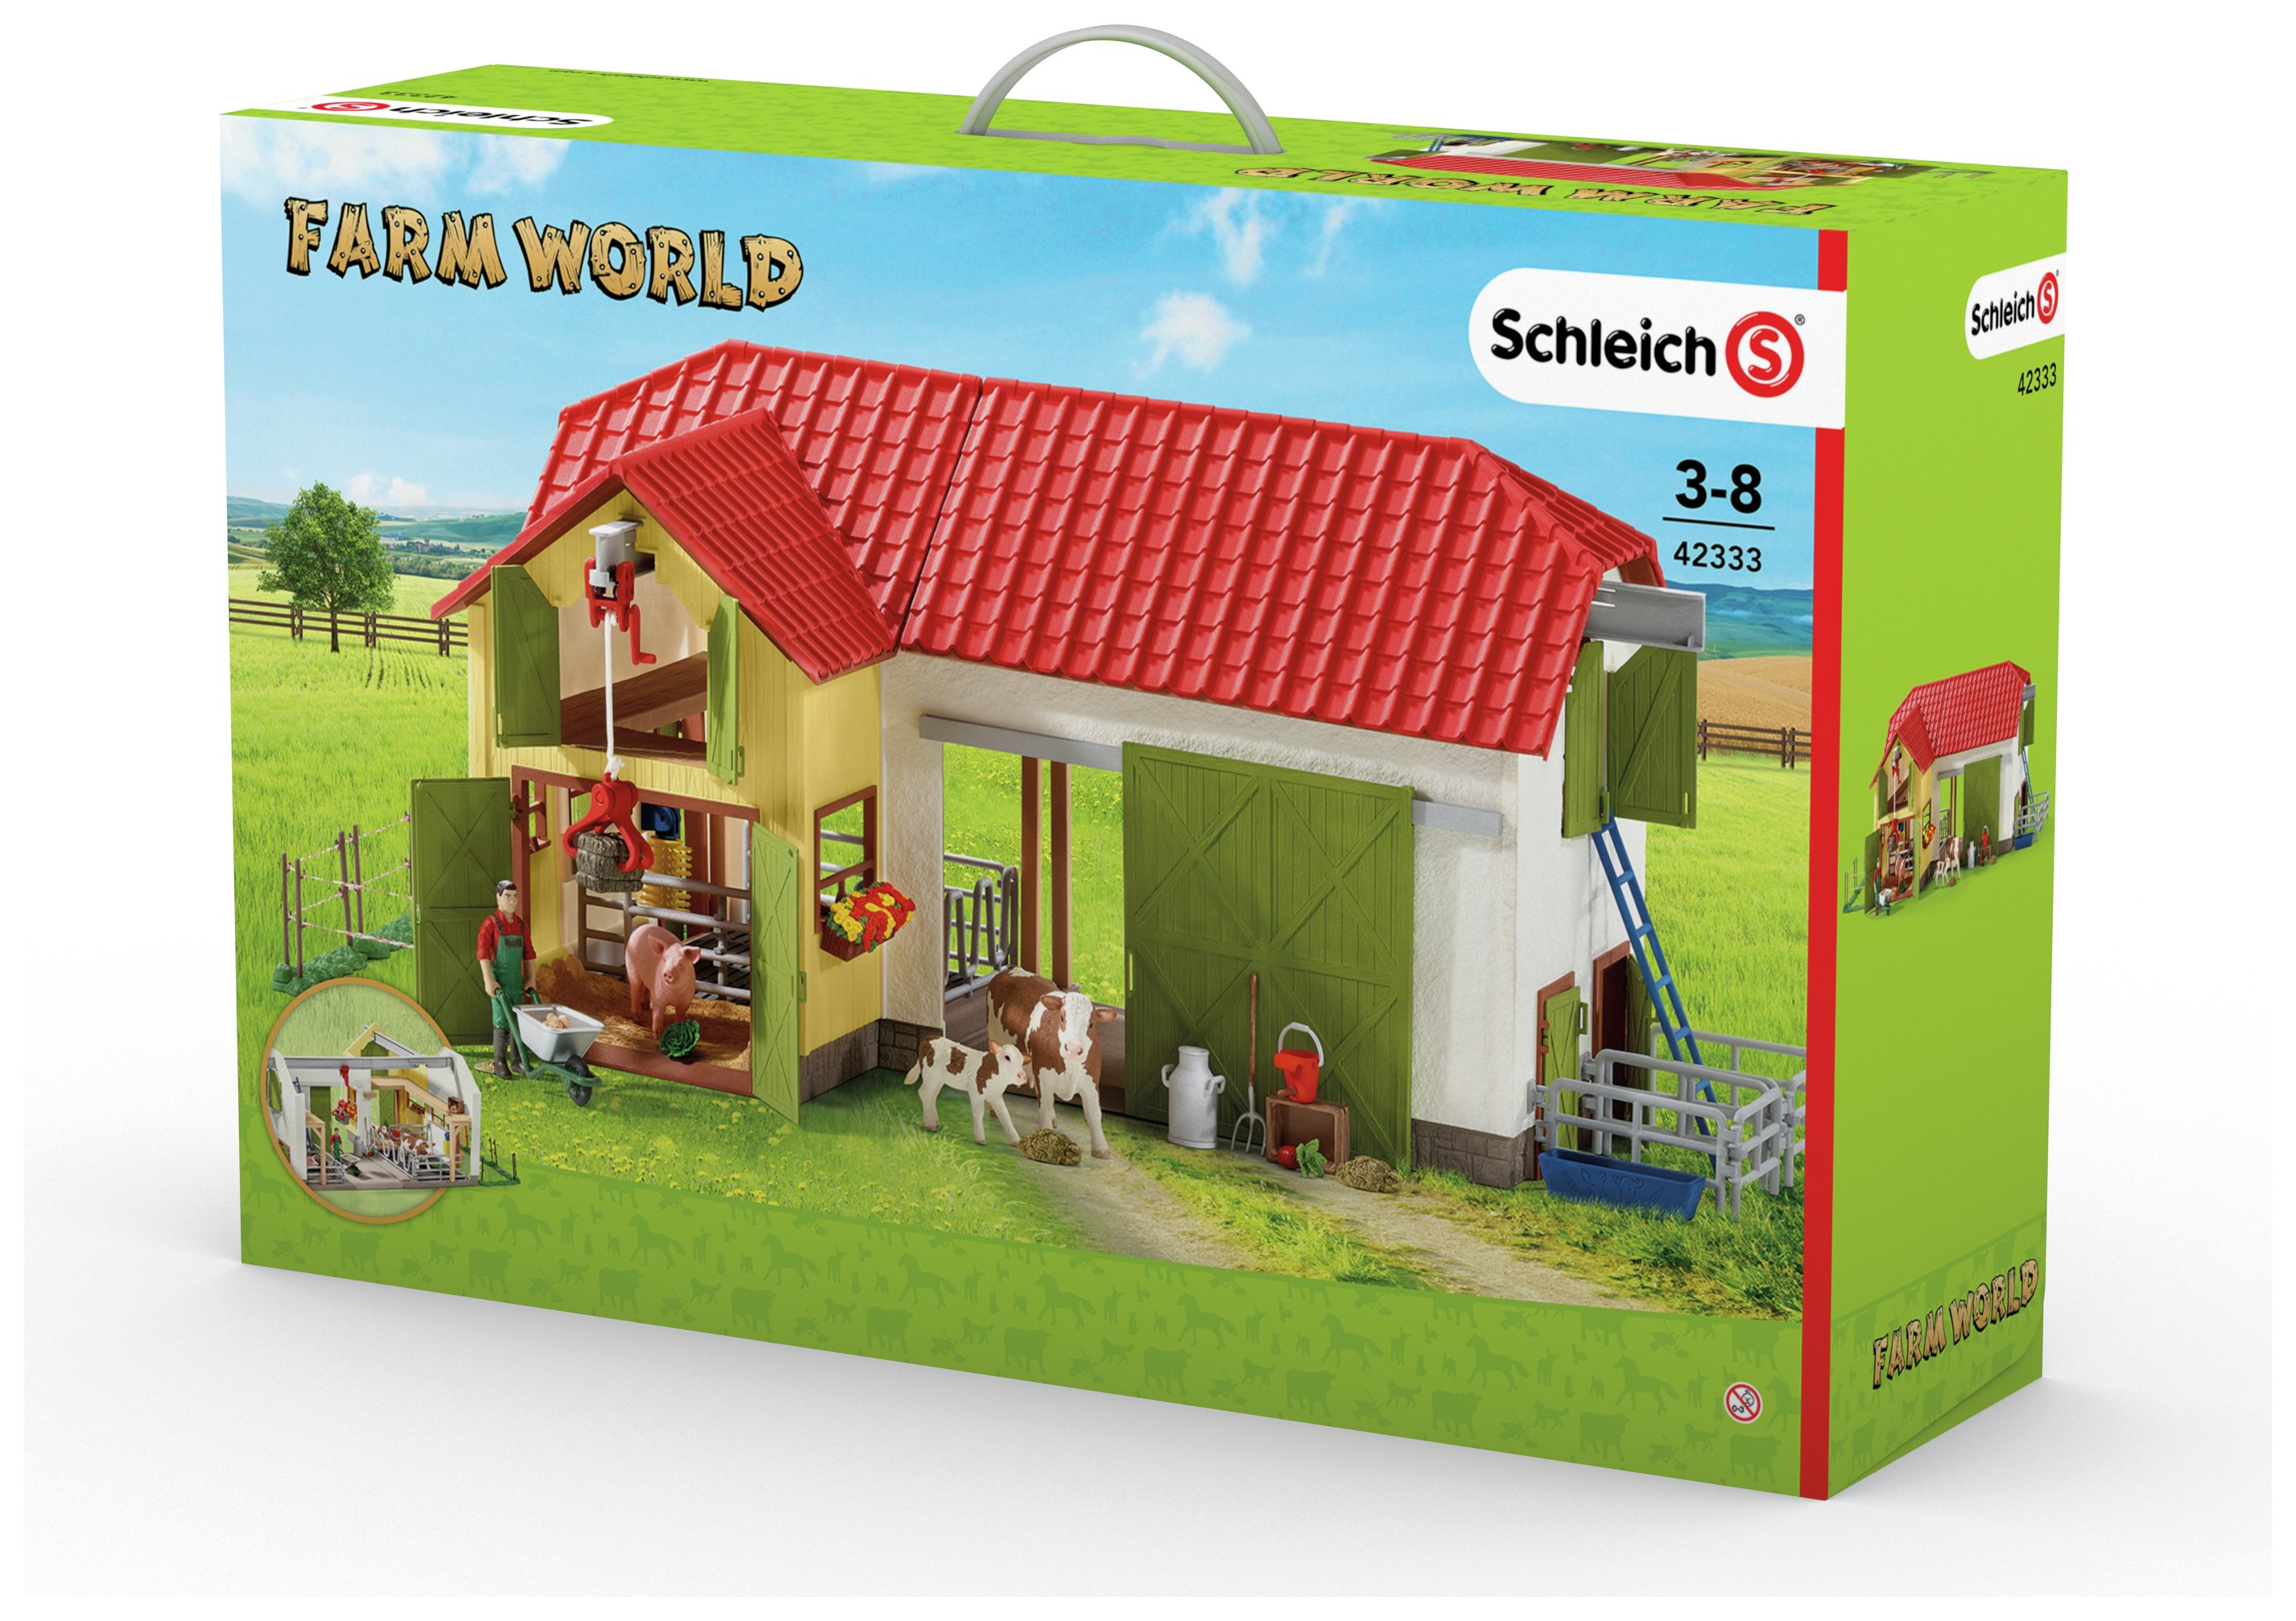 Image of Large Farm Playset with Animals and Accessories.